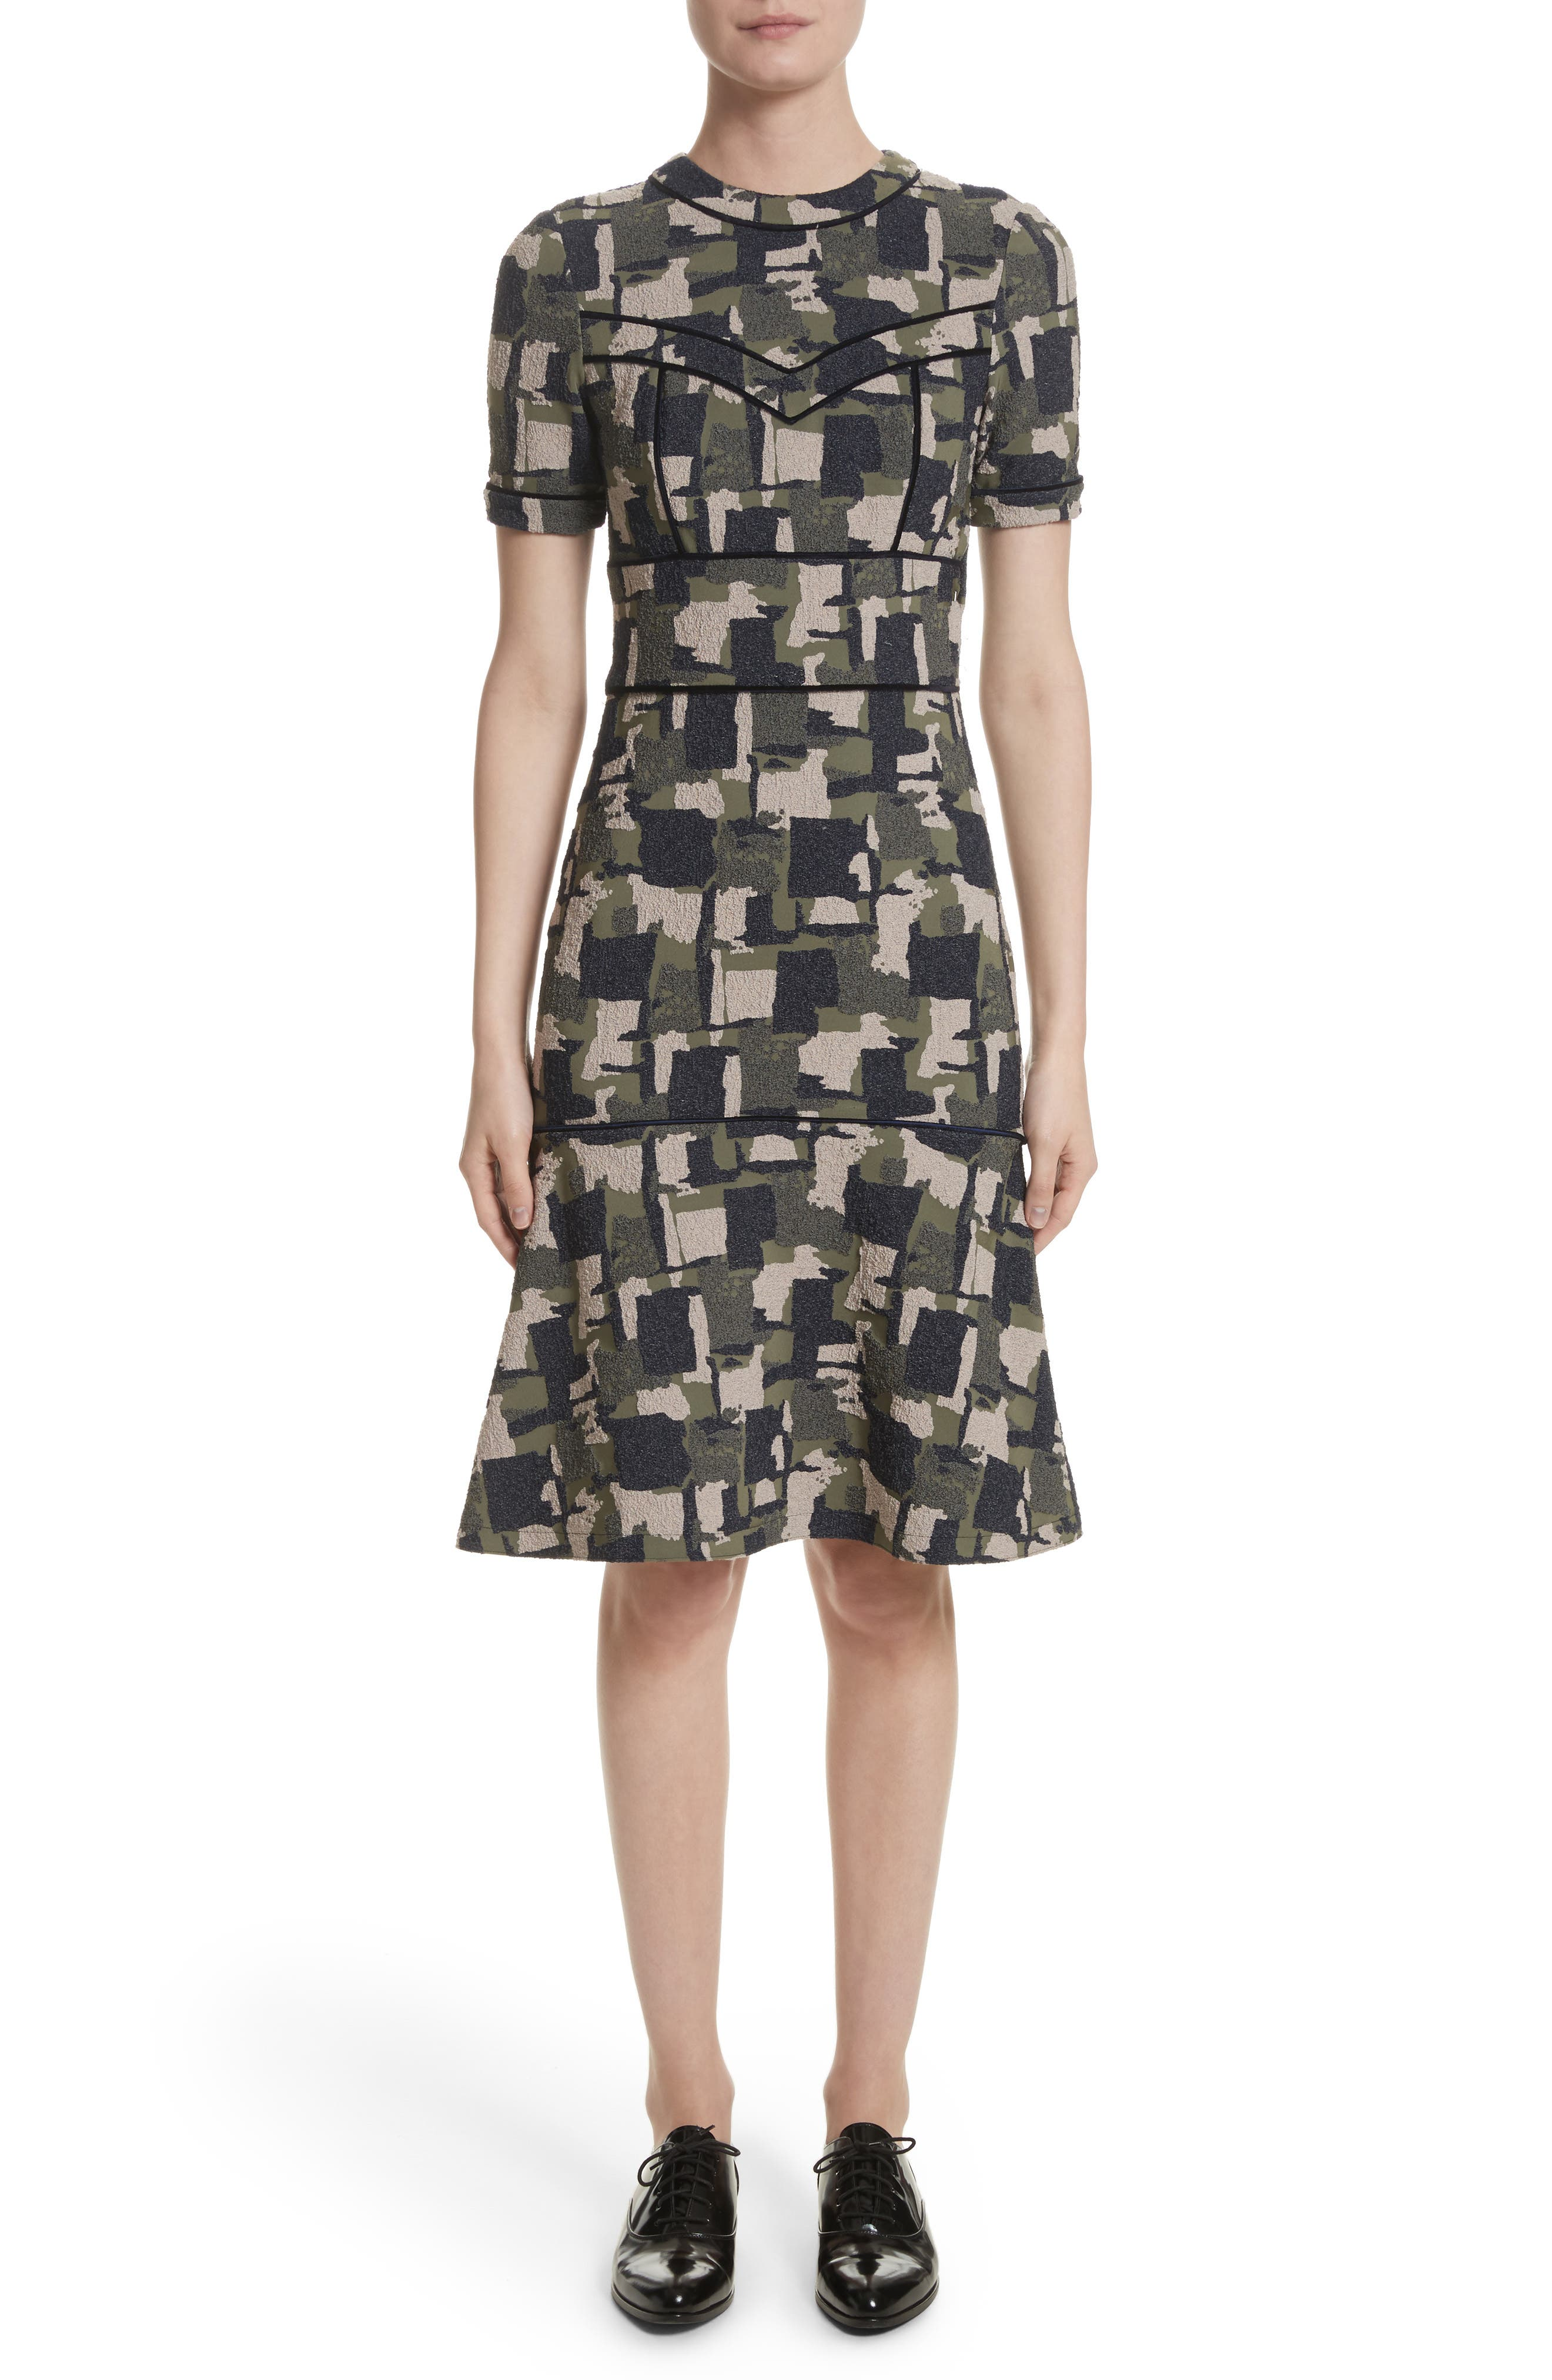 Alternate Image 1 Selected - Yigal Azrouël Patchwork Stretch Jacquard Dress